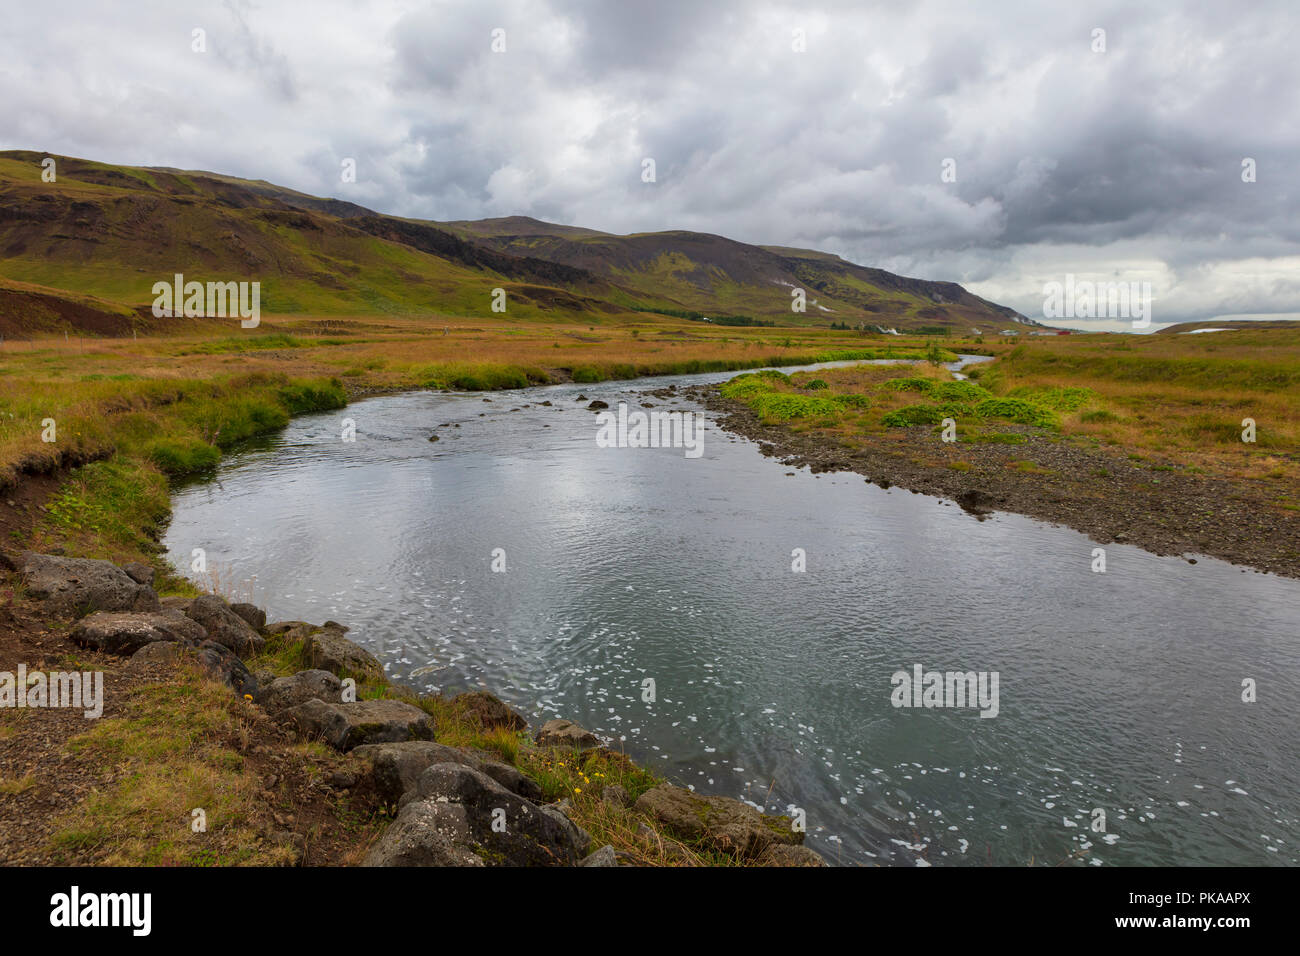 Hringsja, the Suðurland area, Southern Region is a region of Iceland. - Stock Image